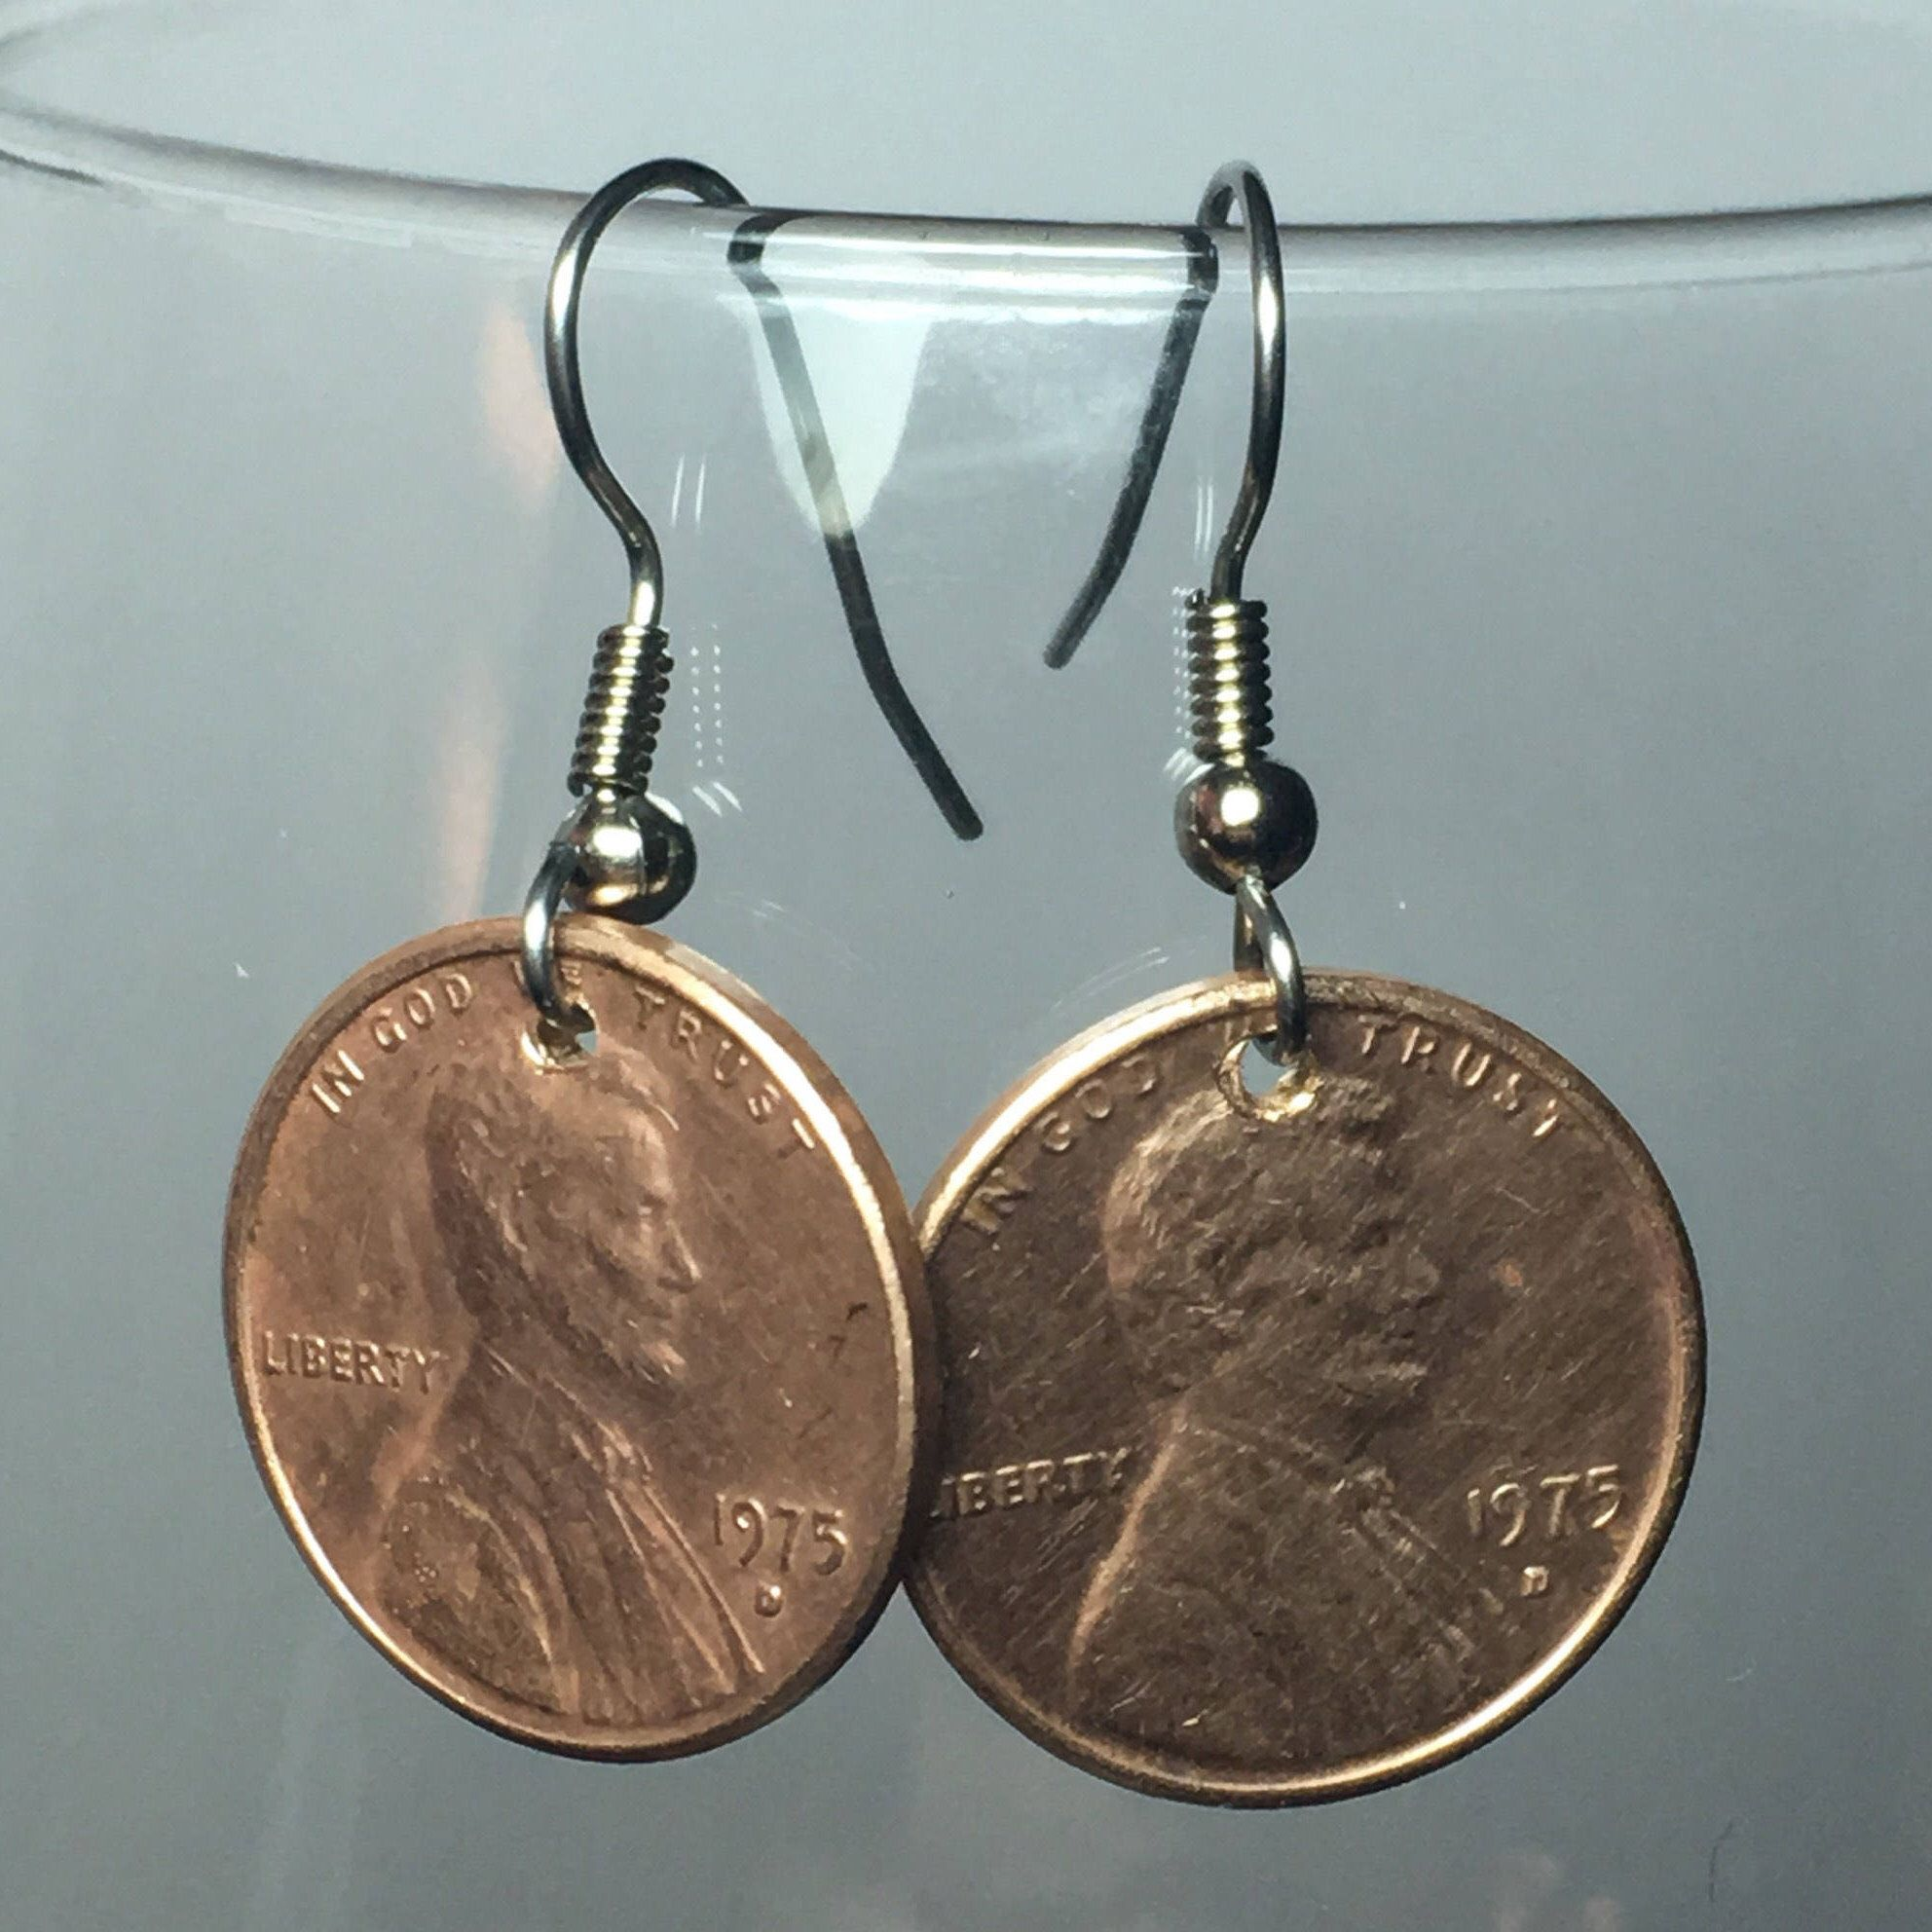 1975 Penny Earrings 45 Year Anniversary 45th Birthday by